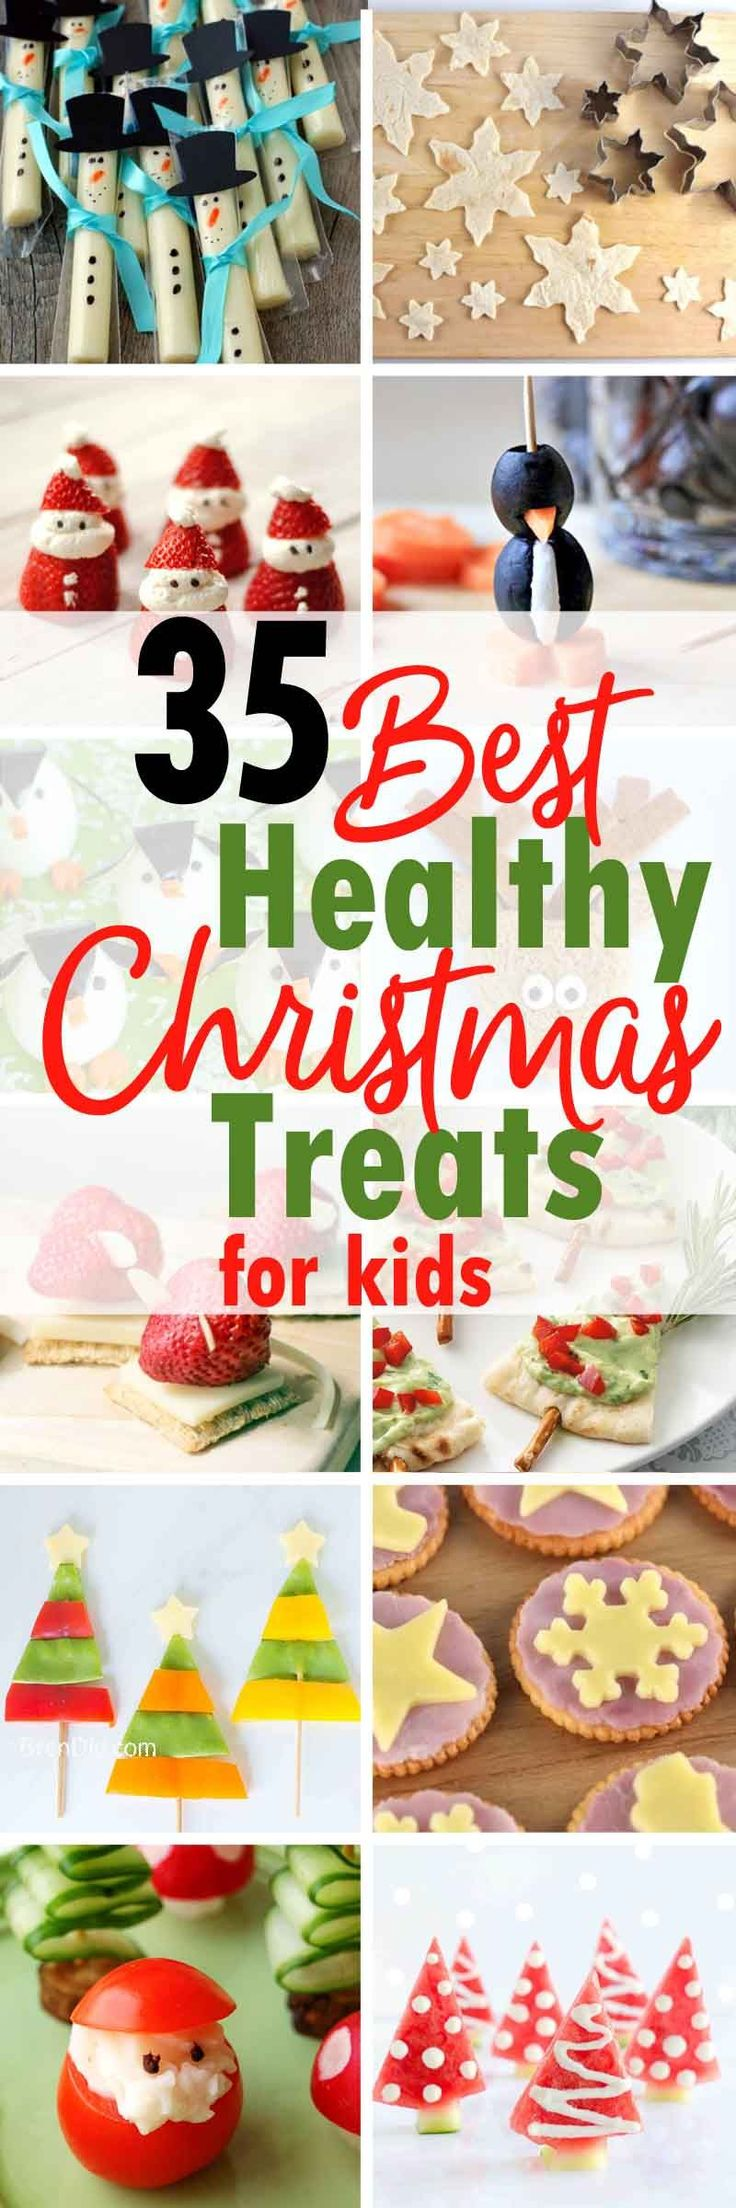 Healthy Christmas treats for kids -  Love the holidays but hate sugar-filled snacks? These healthy Christmas treats are perfect for a healthy holiday season.